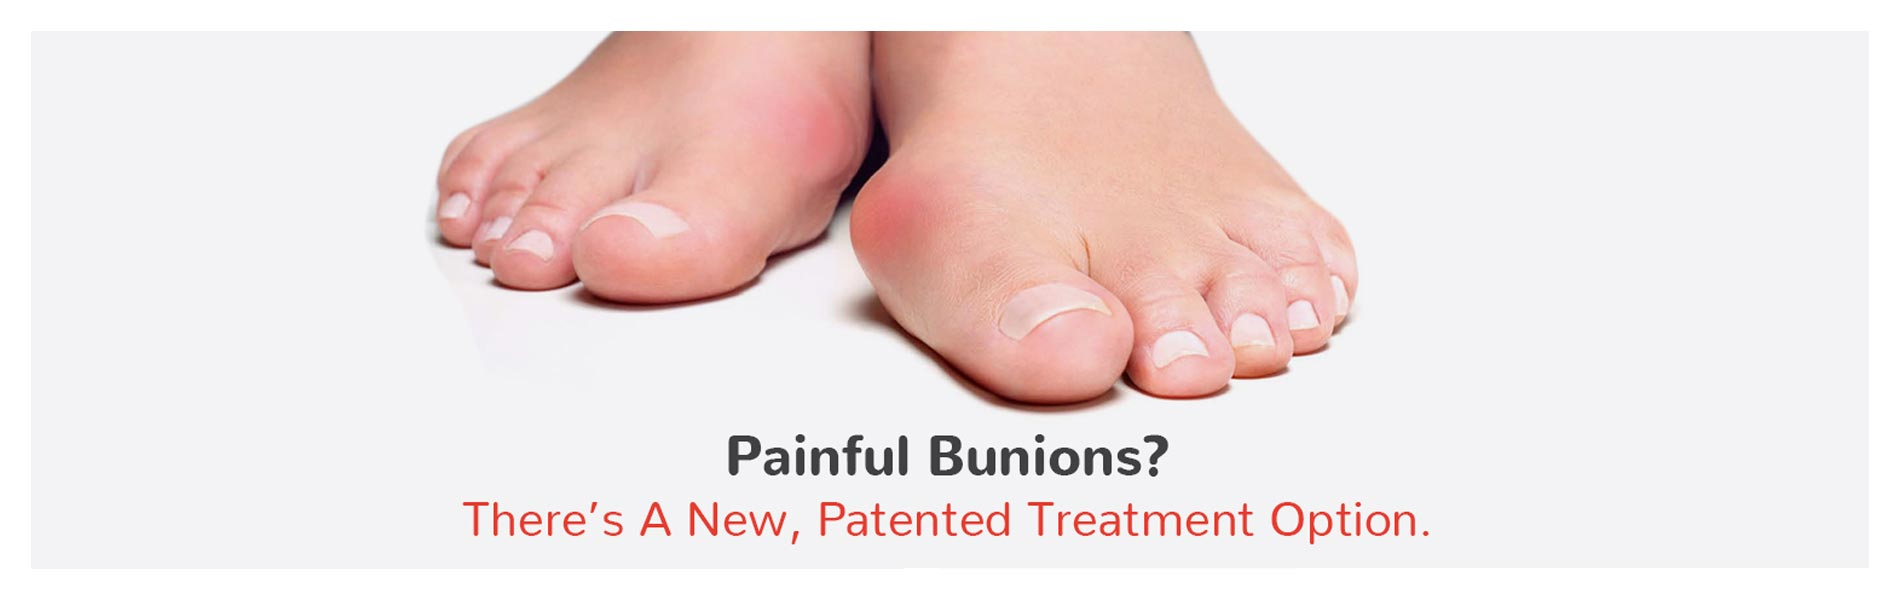 Painful Bunions? There's a new patented treatment option.